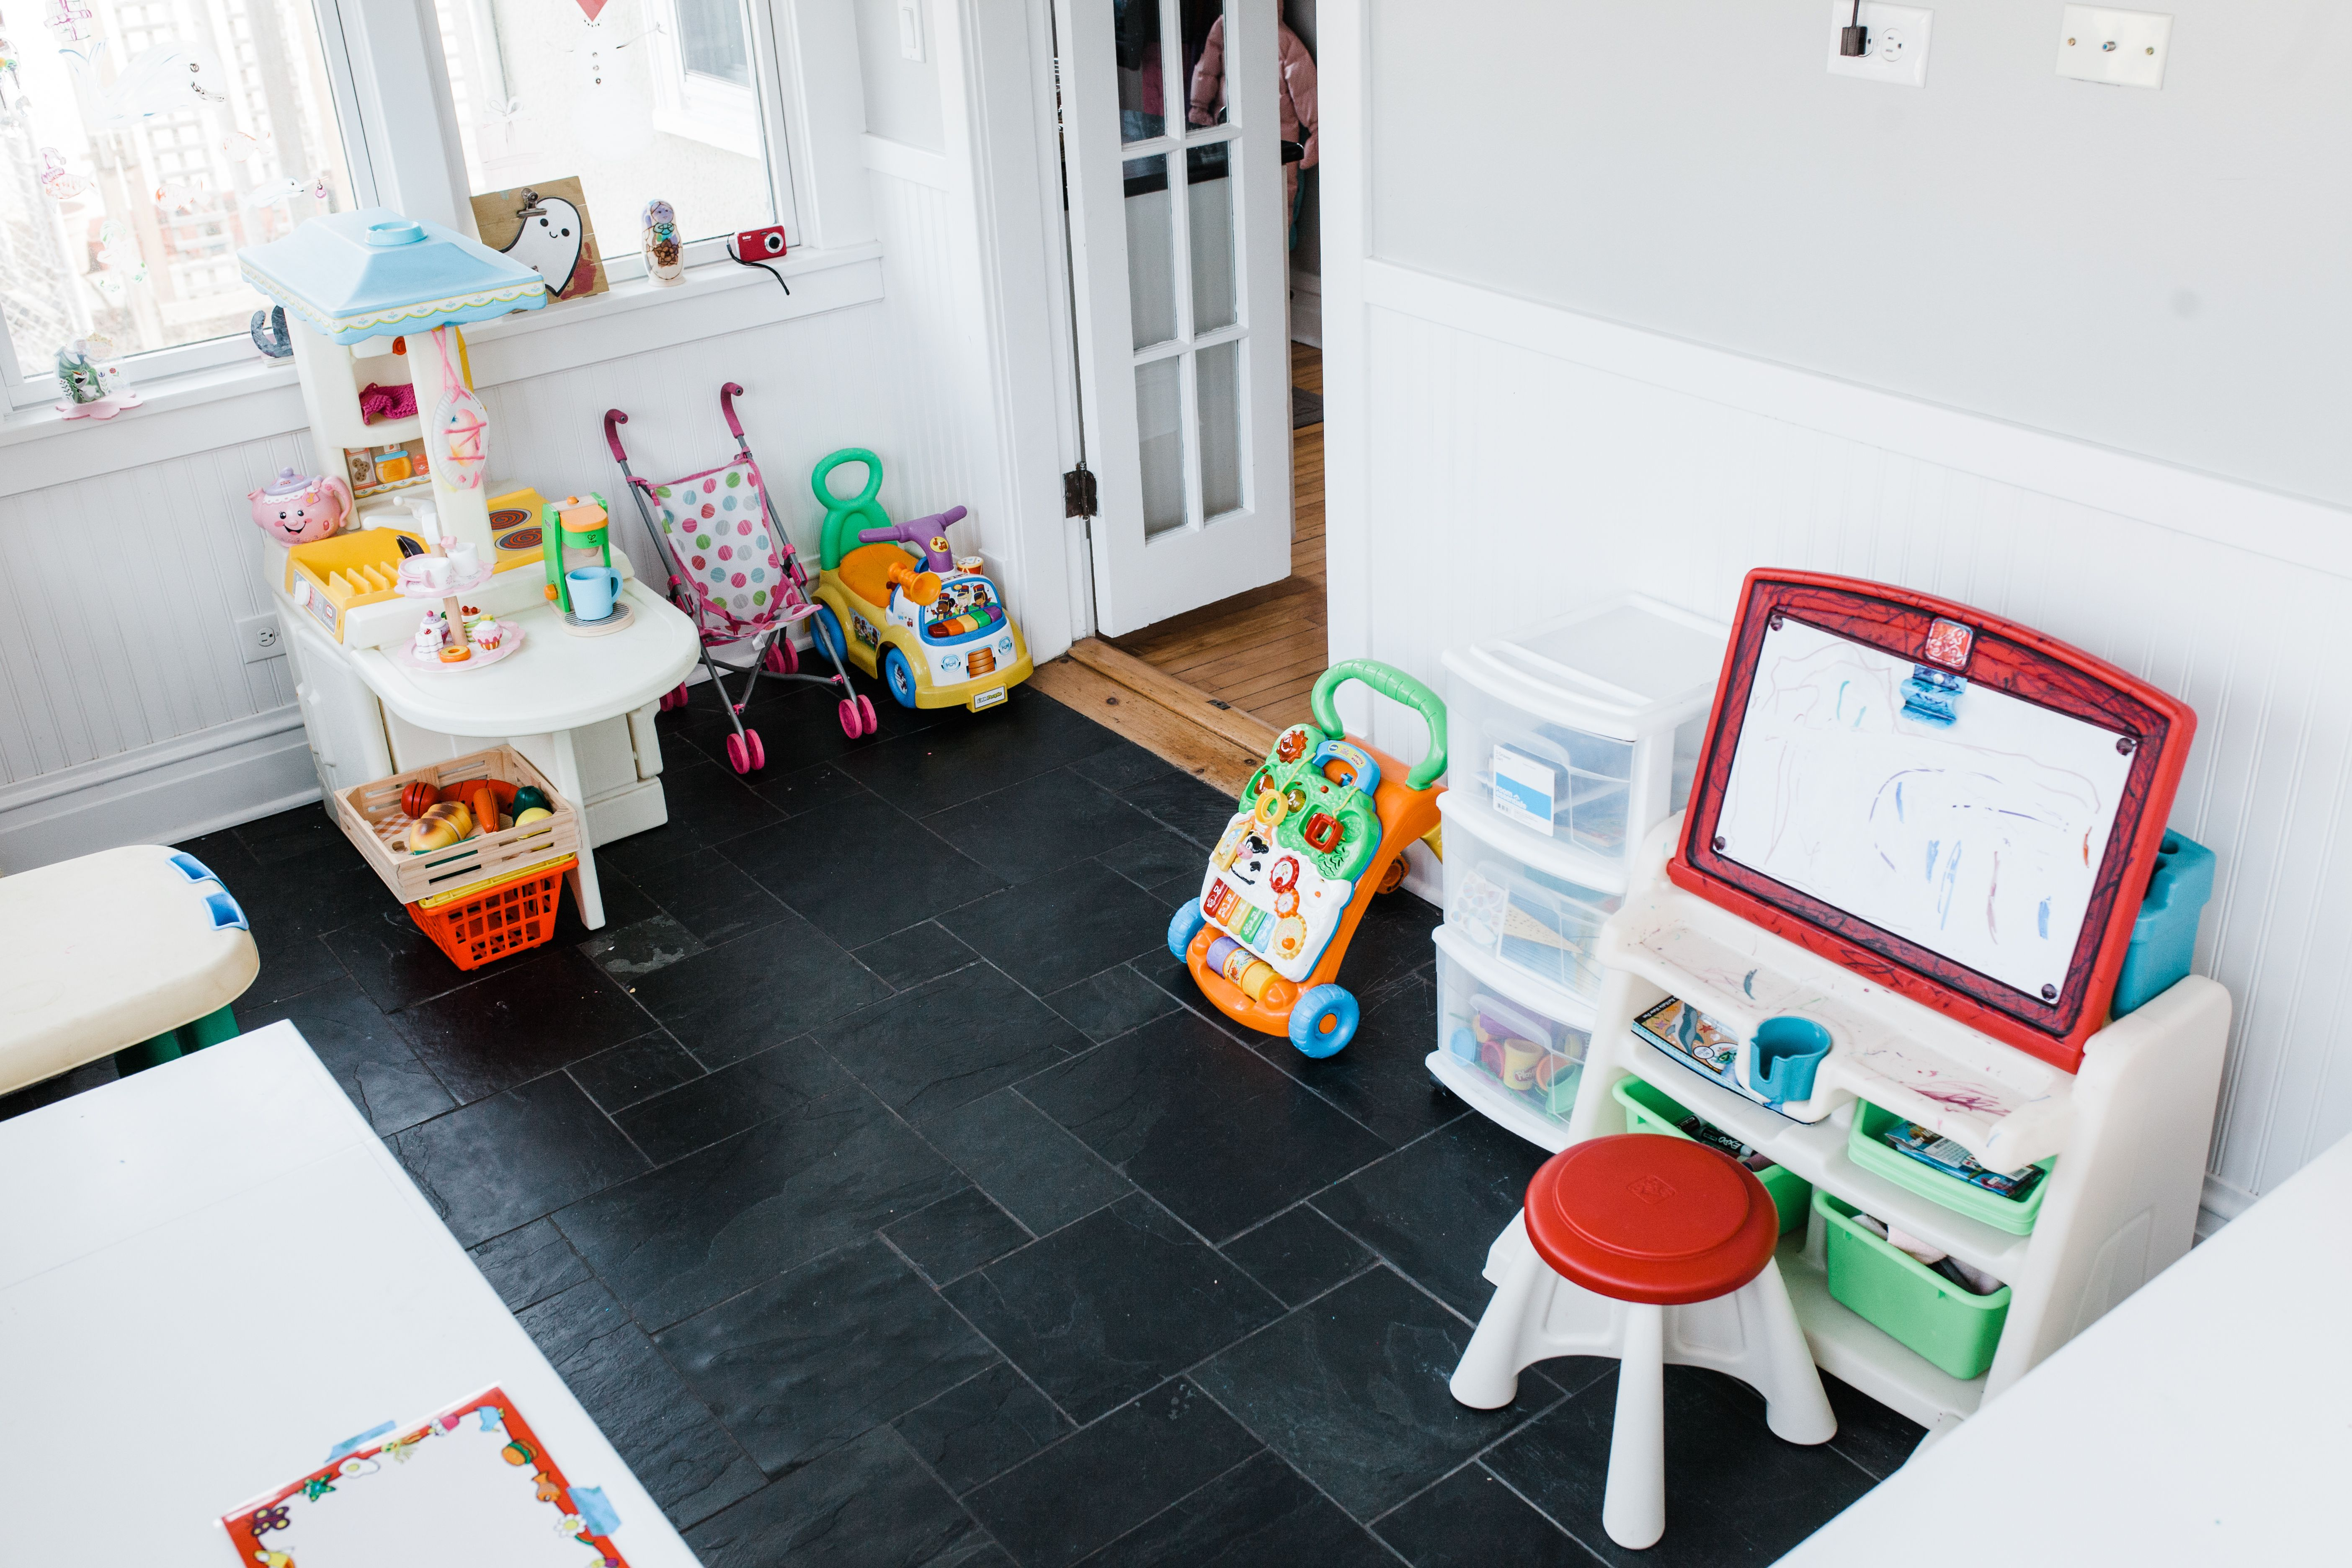 The One Secret Everyone Should Steal From These Playroom